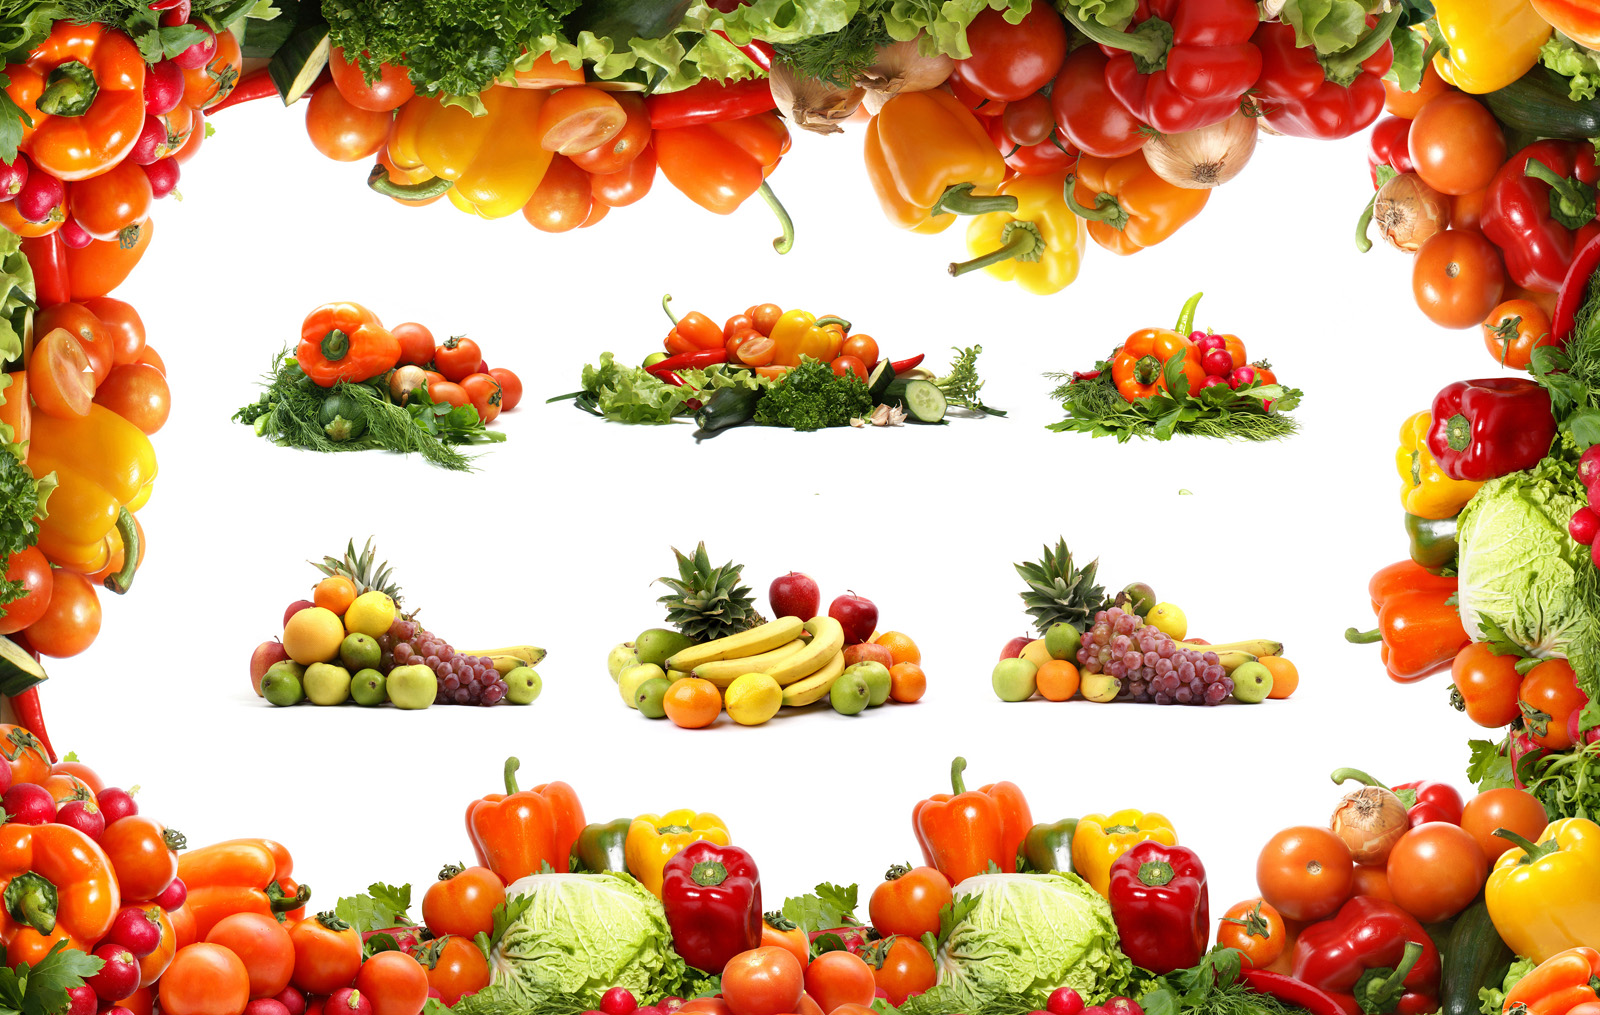 Fruits and vegetables 26135